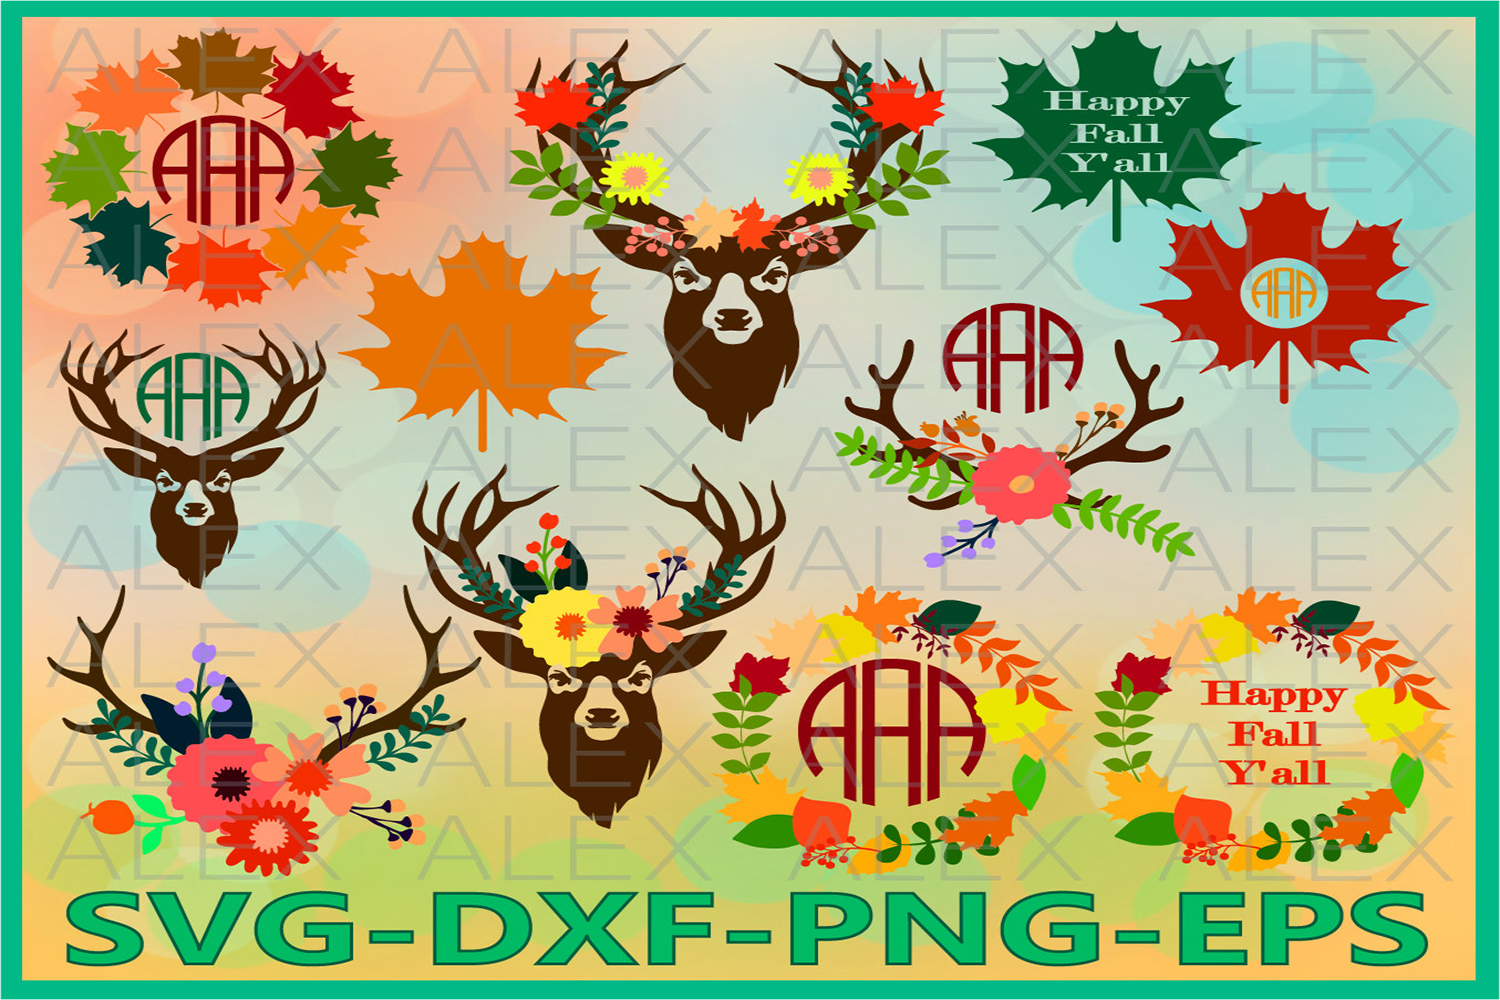 Autumn Svg, Fall svg, Happy Fall y'all, Deer Antler Svg example image 1